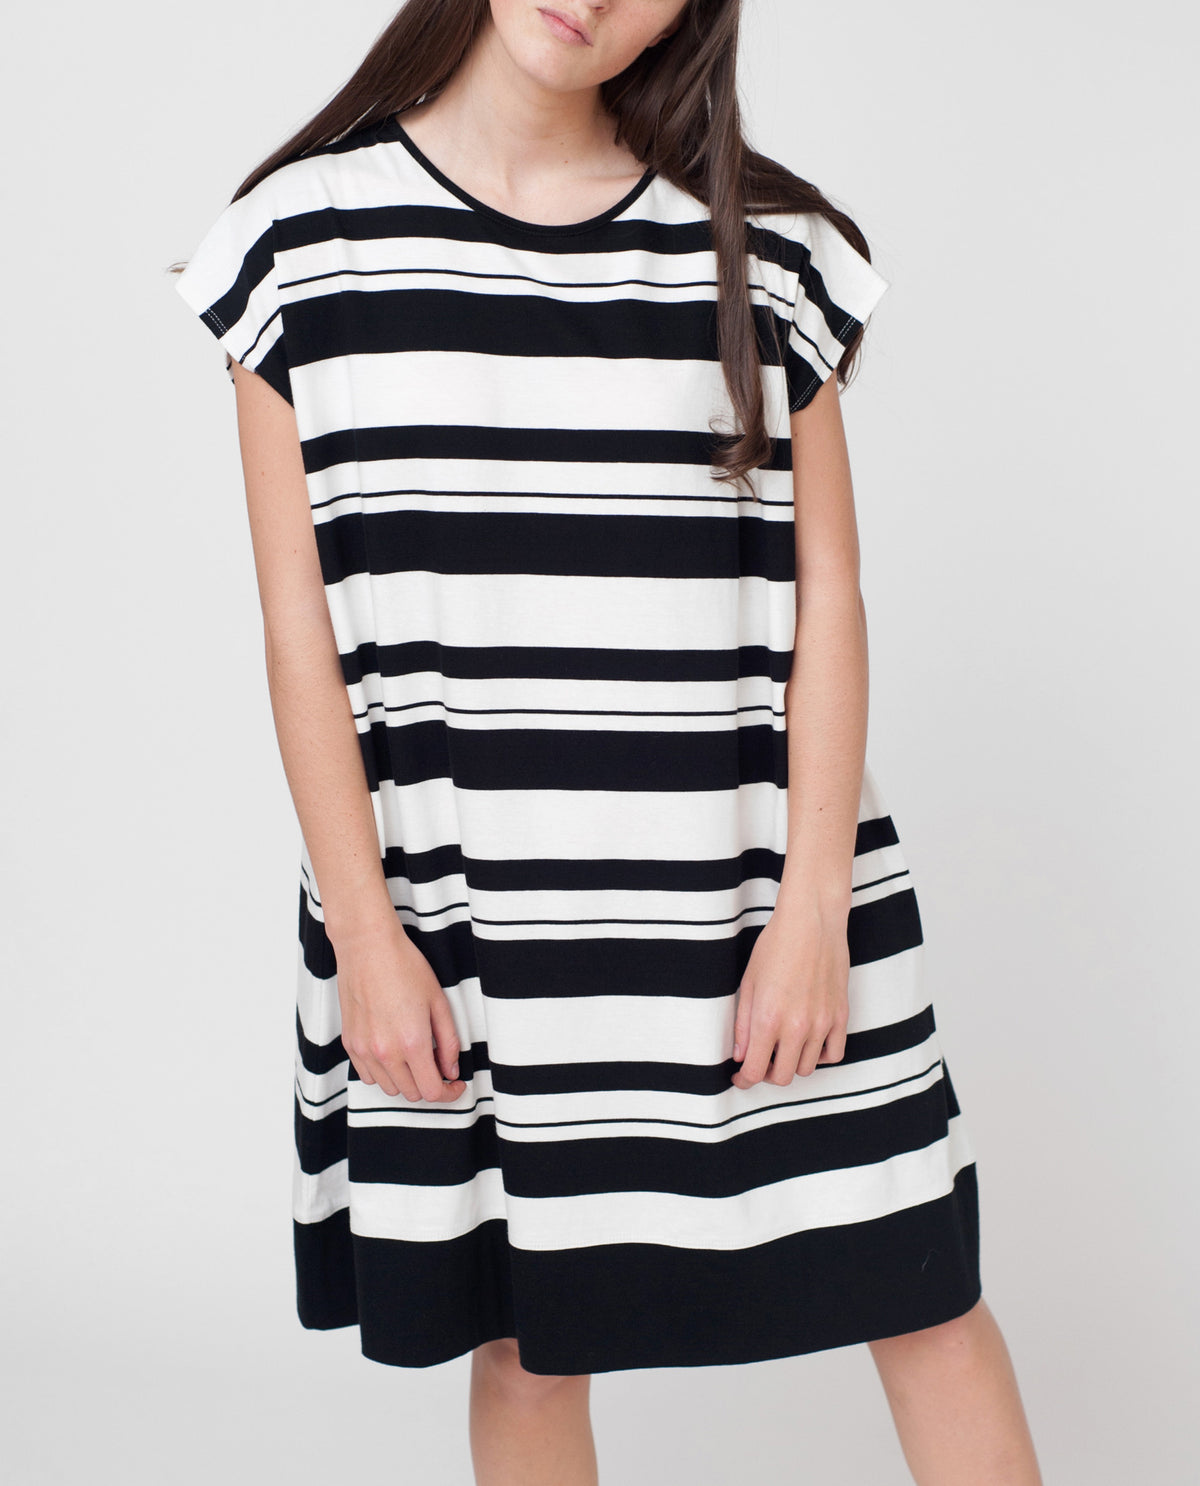 NANCY Organic Cotton Dress